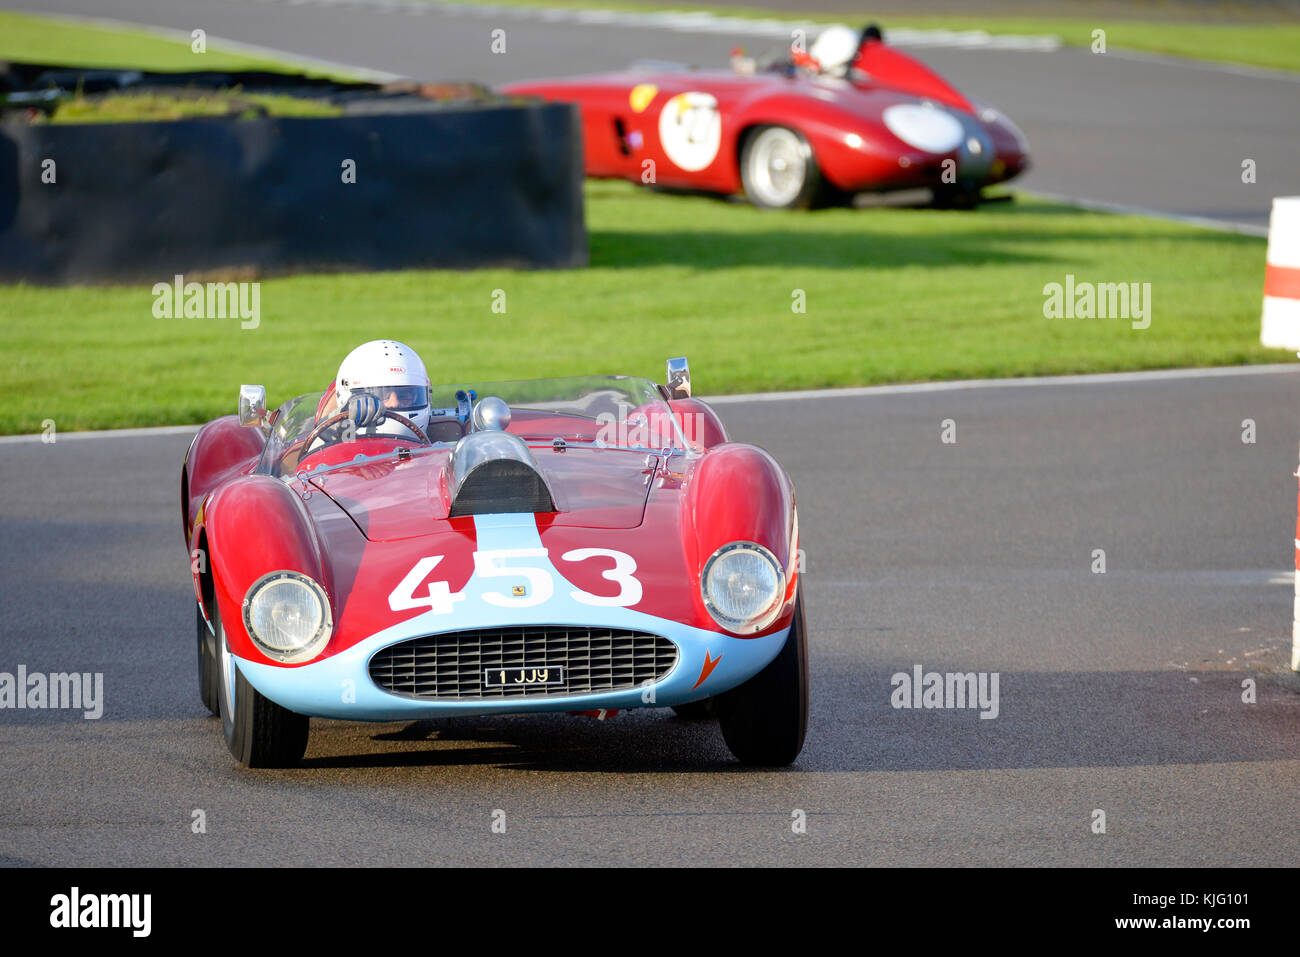 1957-ferrari-500-trc-owned-and-driven-by-jason-yates-racing-at-goodwood-KJG101.jpg